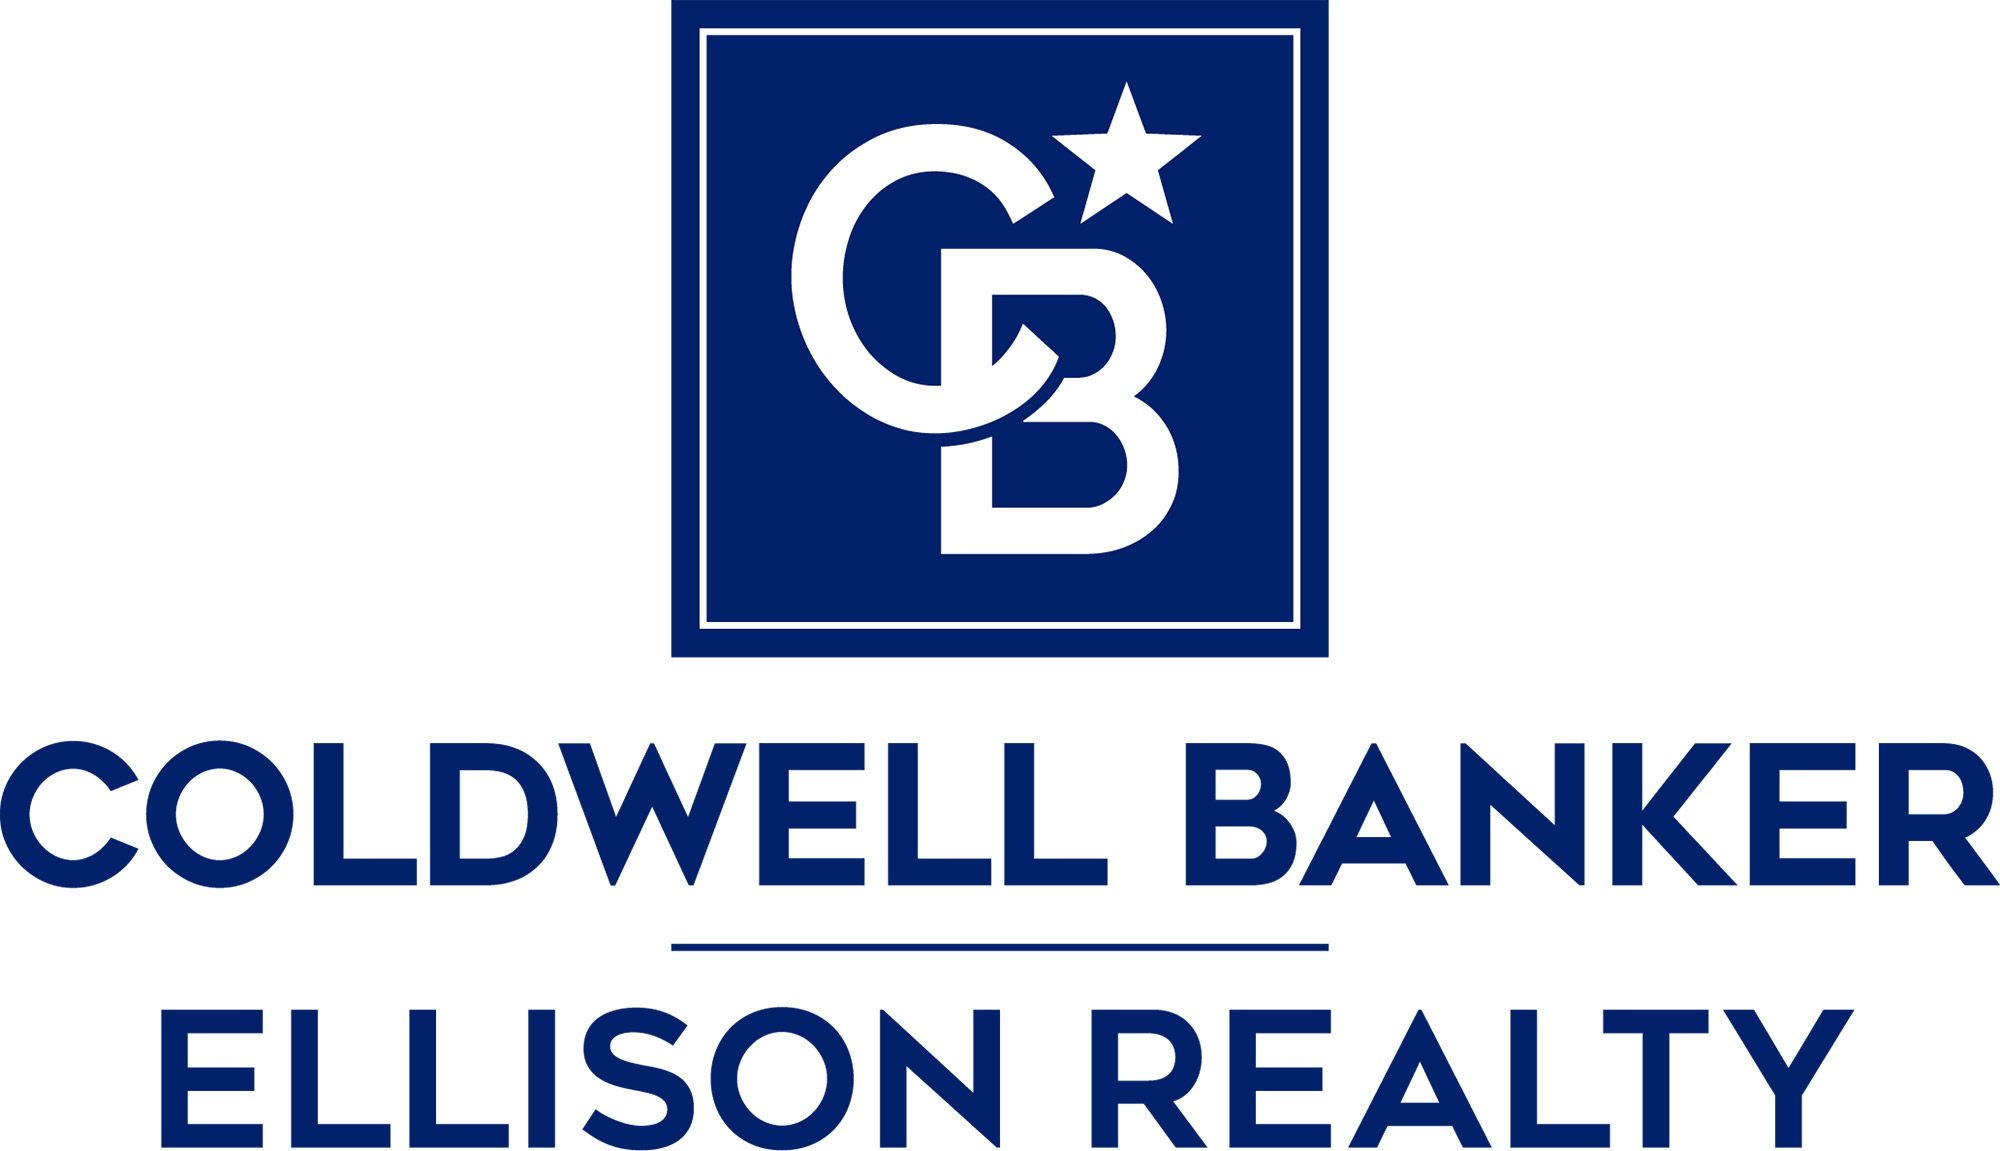 Frederick Waters - Coldwell Banker Ellison Realty Logo